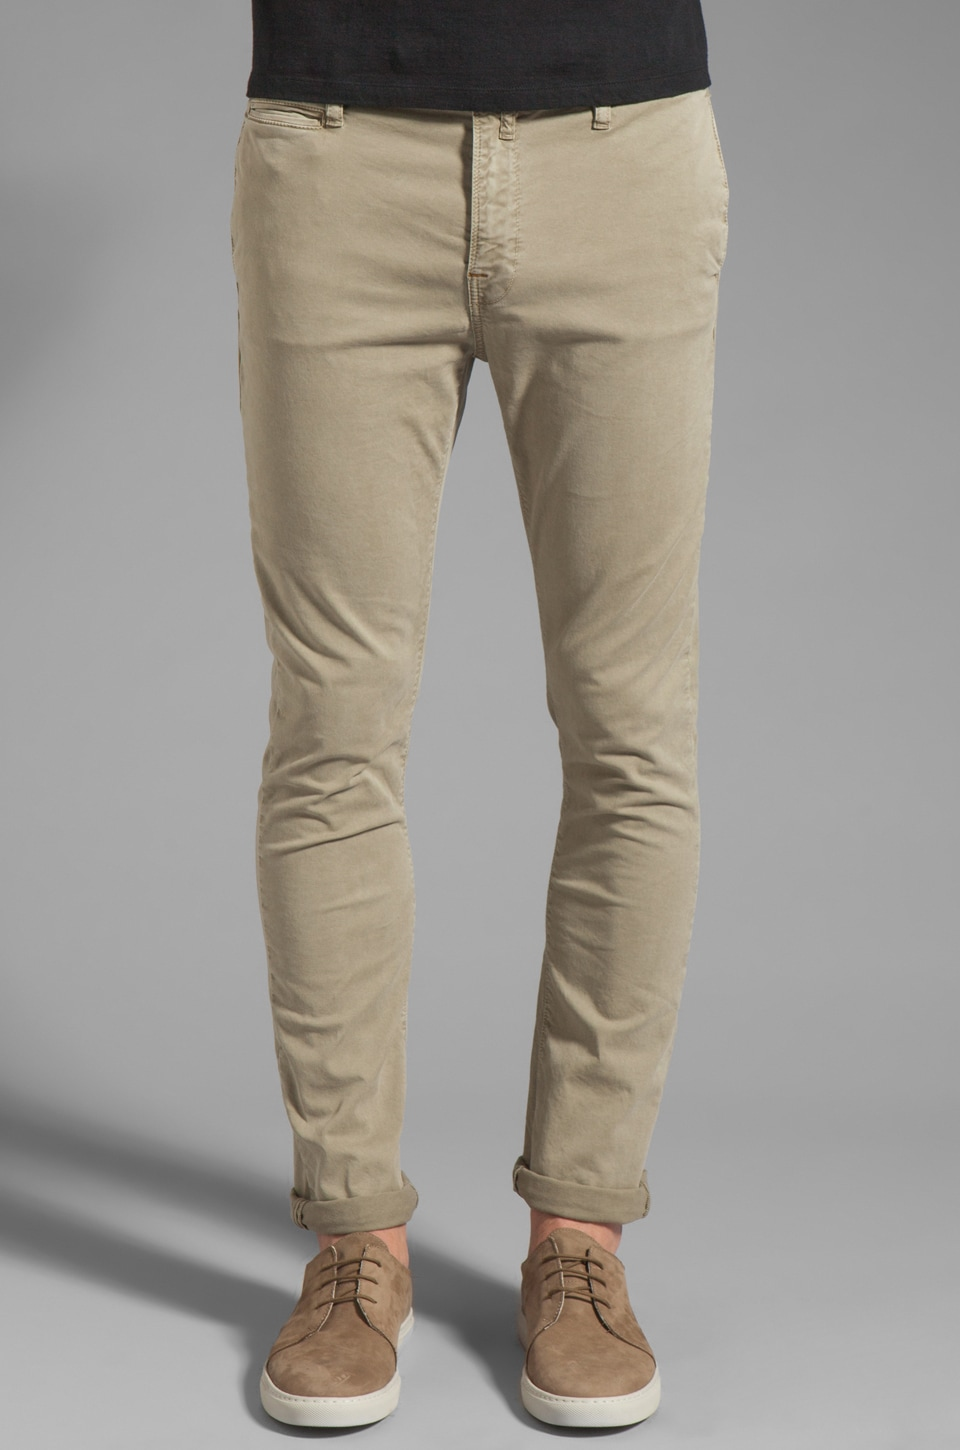 Nudie Jeans Khaki Tight in Organic Dusty Khaki